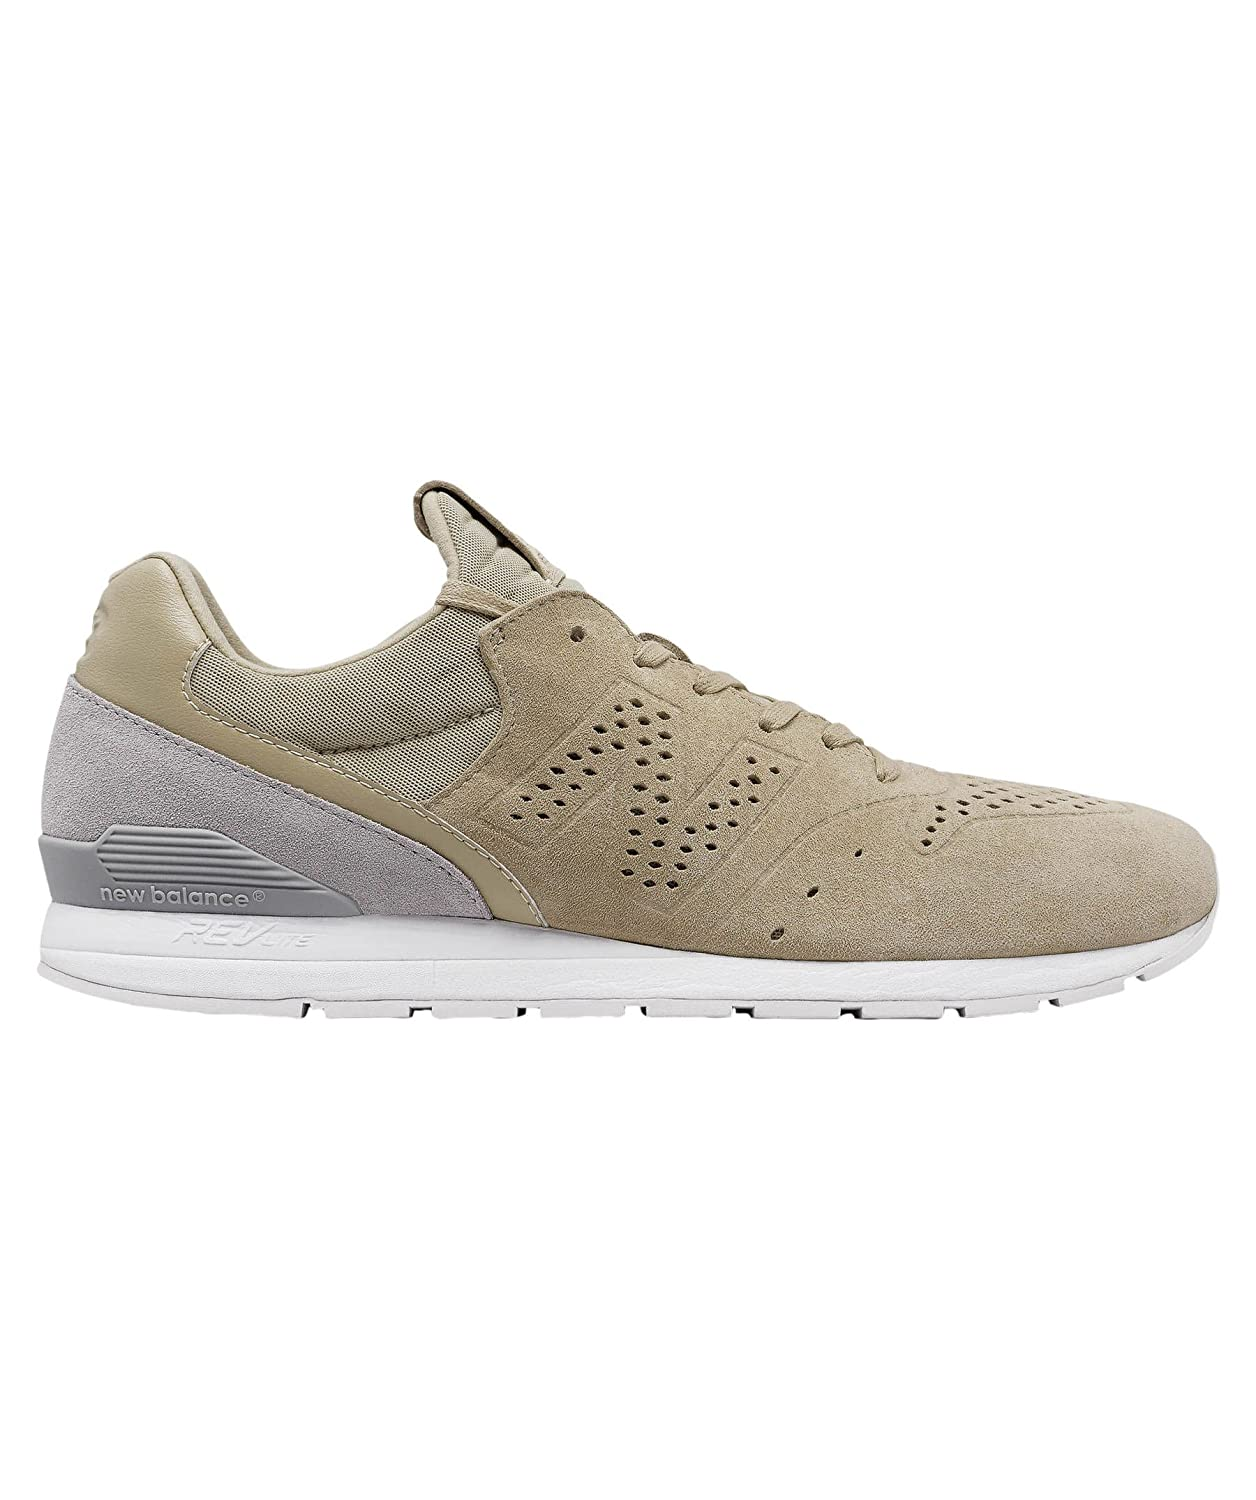 New Balance 996 Re-Engineered Sand Suede Trainers 45.5 EU|Natural